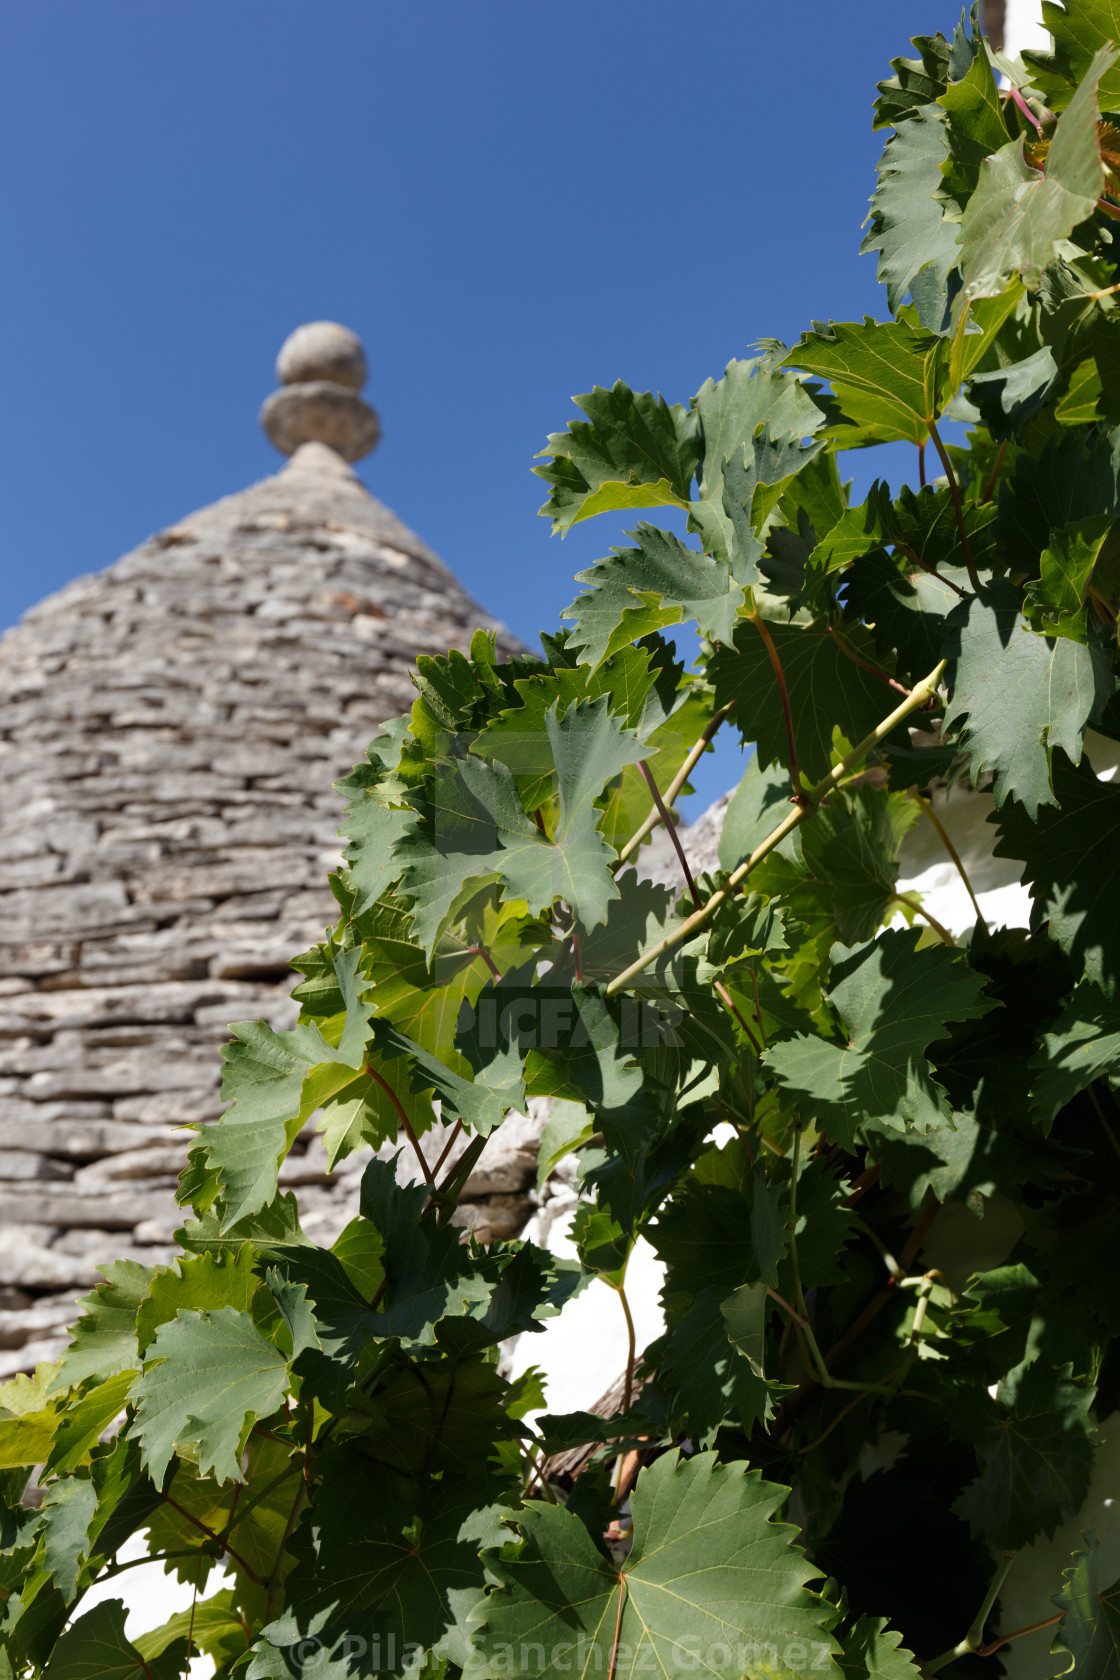 """Grapevine and trullo dome in the sun, Alberobello, Apulia, Italy"" stock image"